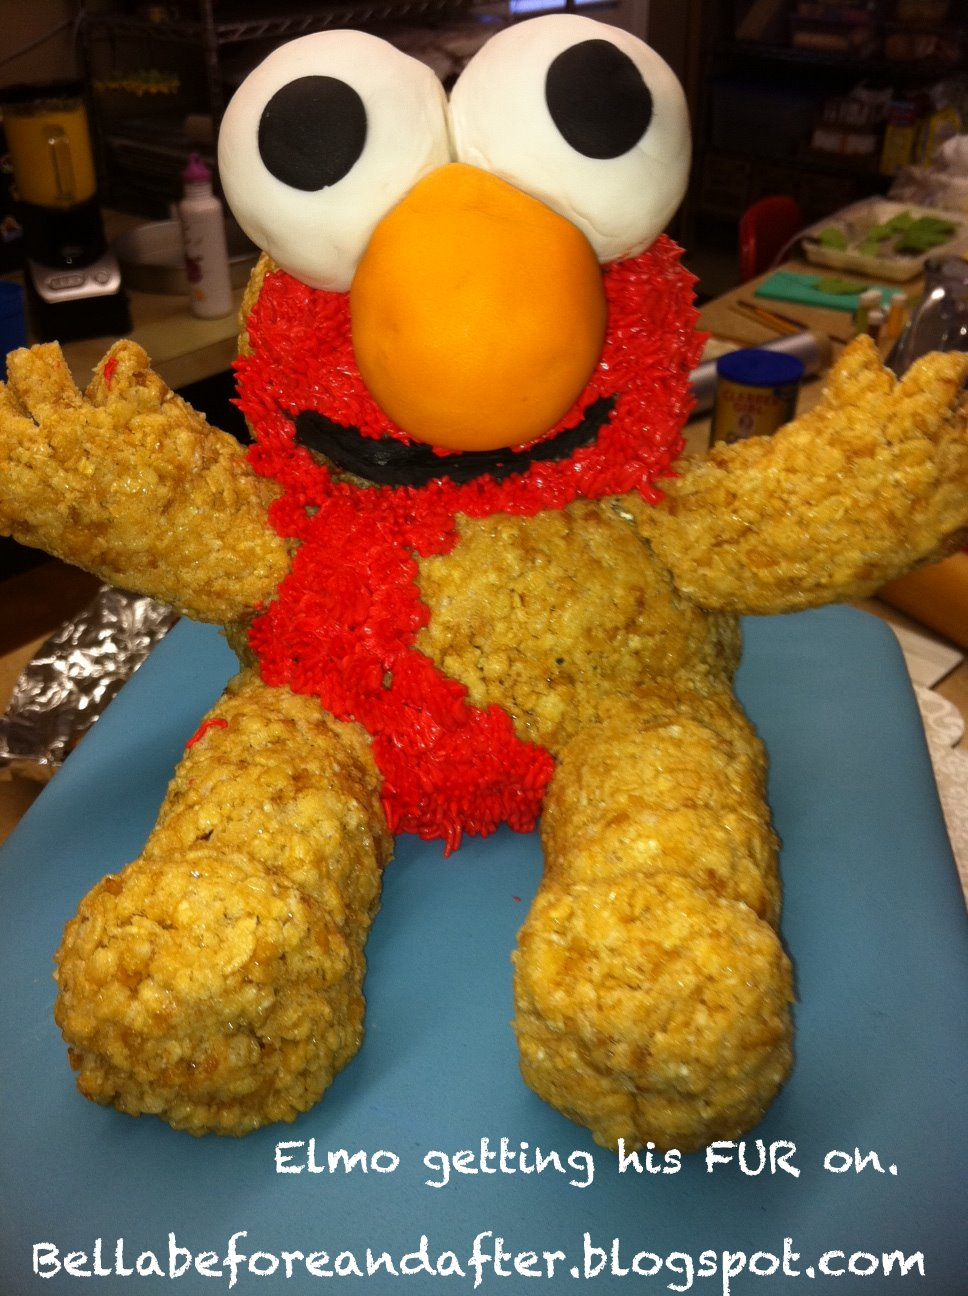 What To Use For Elmos Nose On A Cake